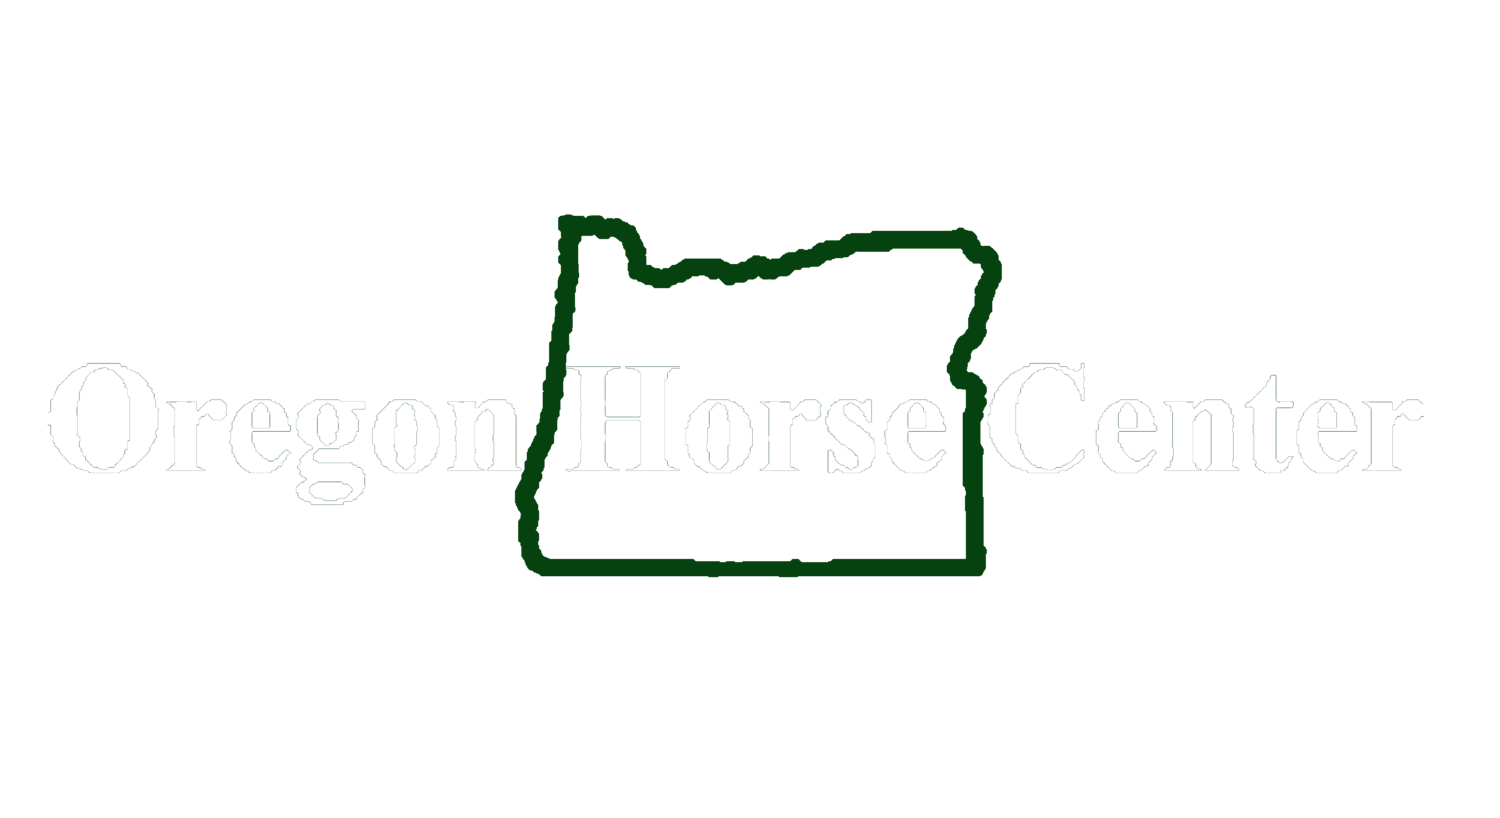 Oregon Horse Center